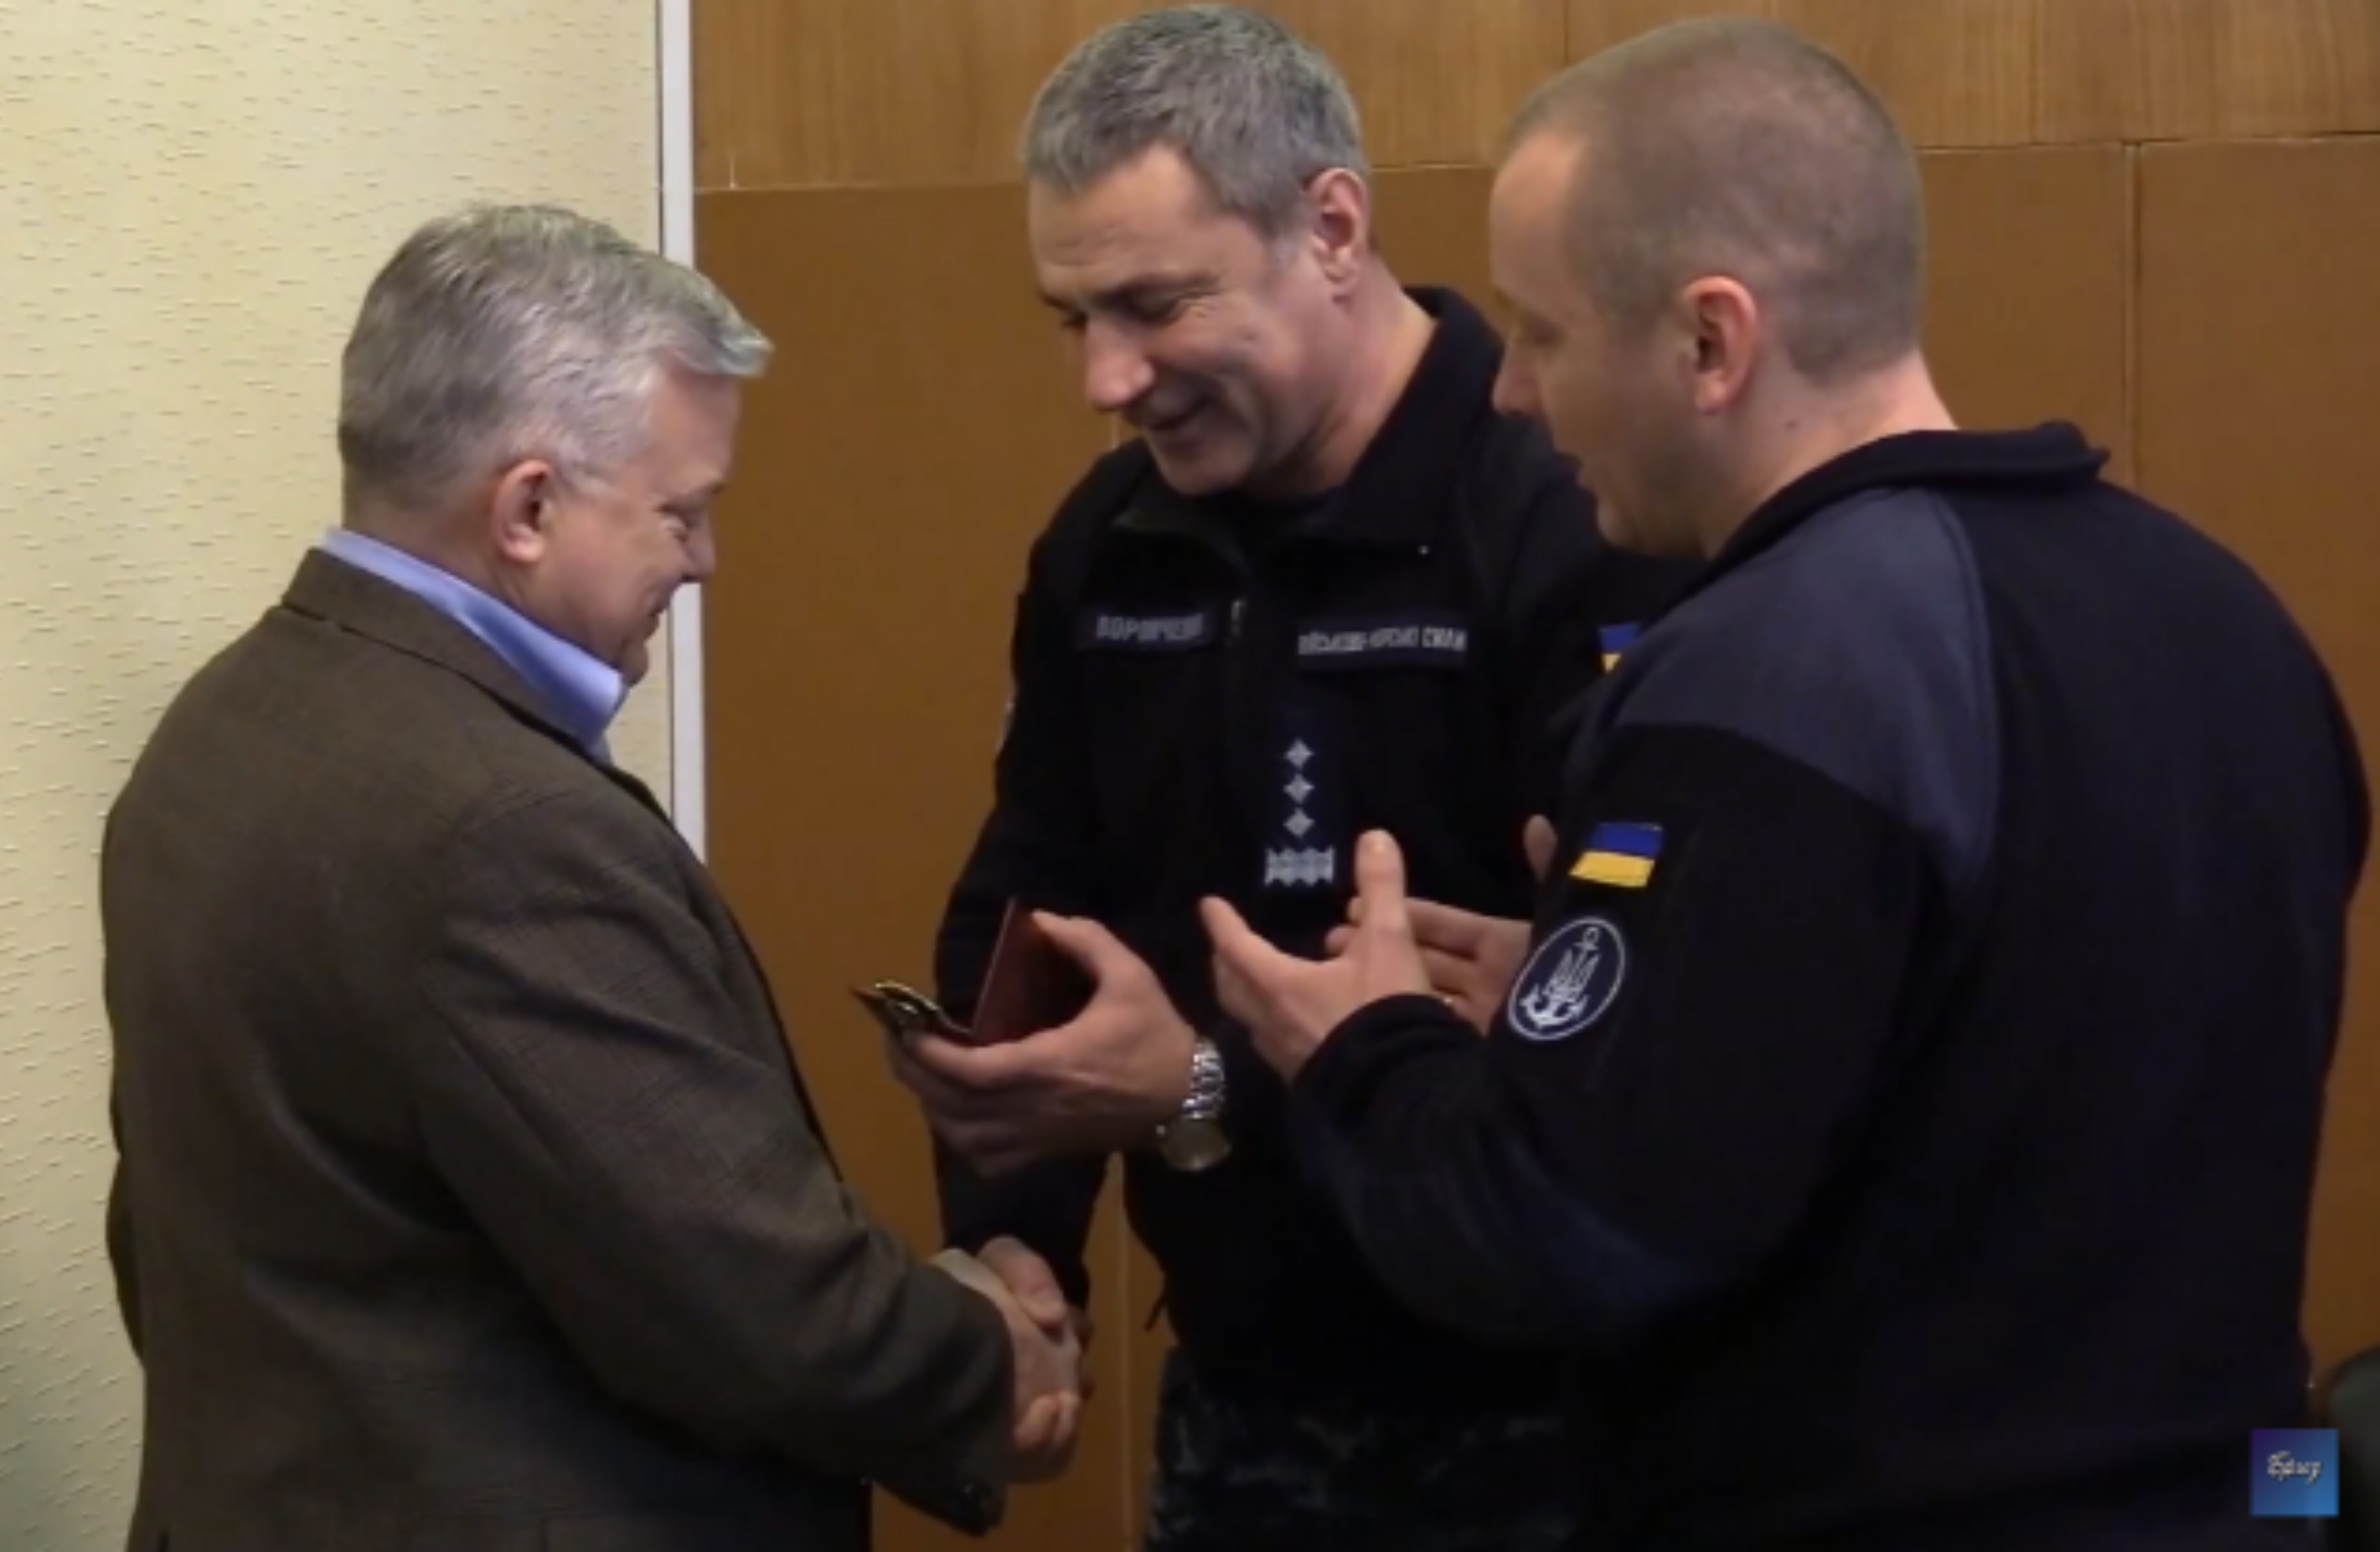 DGMT receives award from Ukrainian Admiral